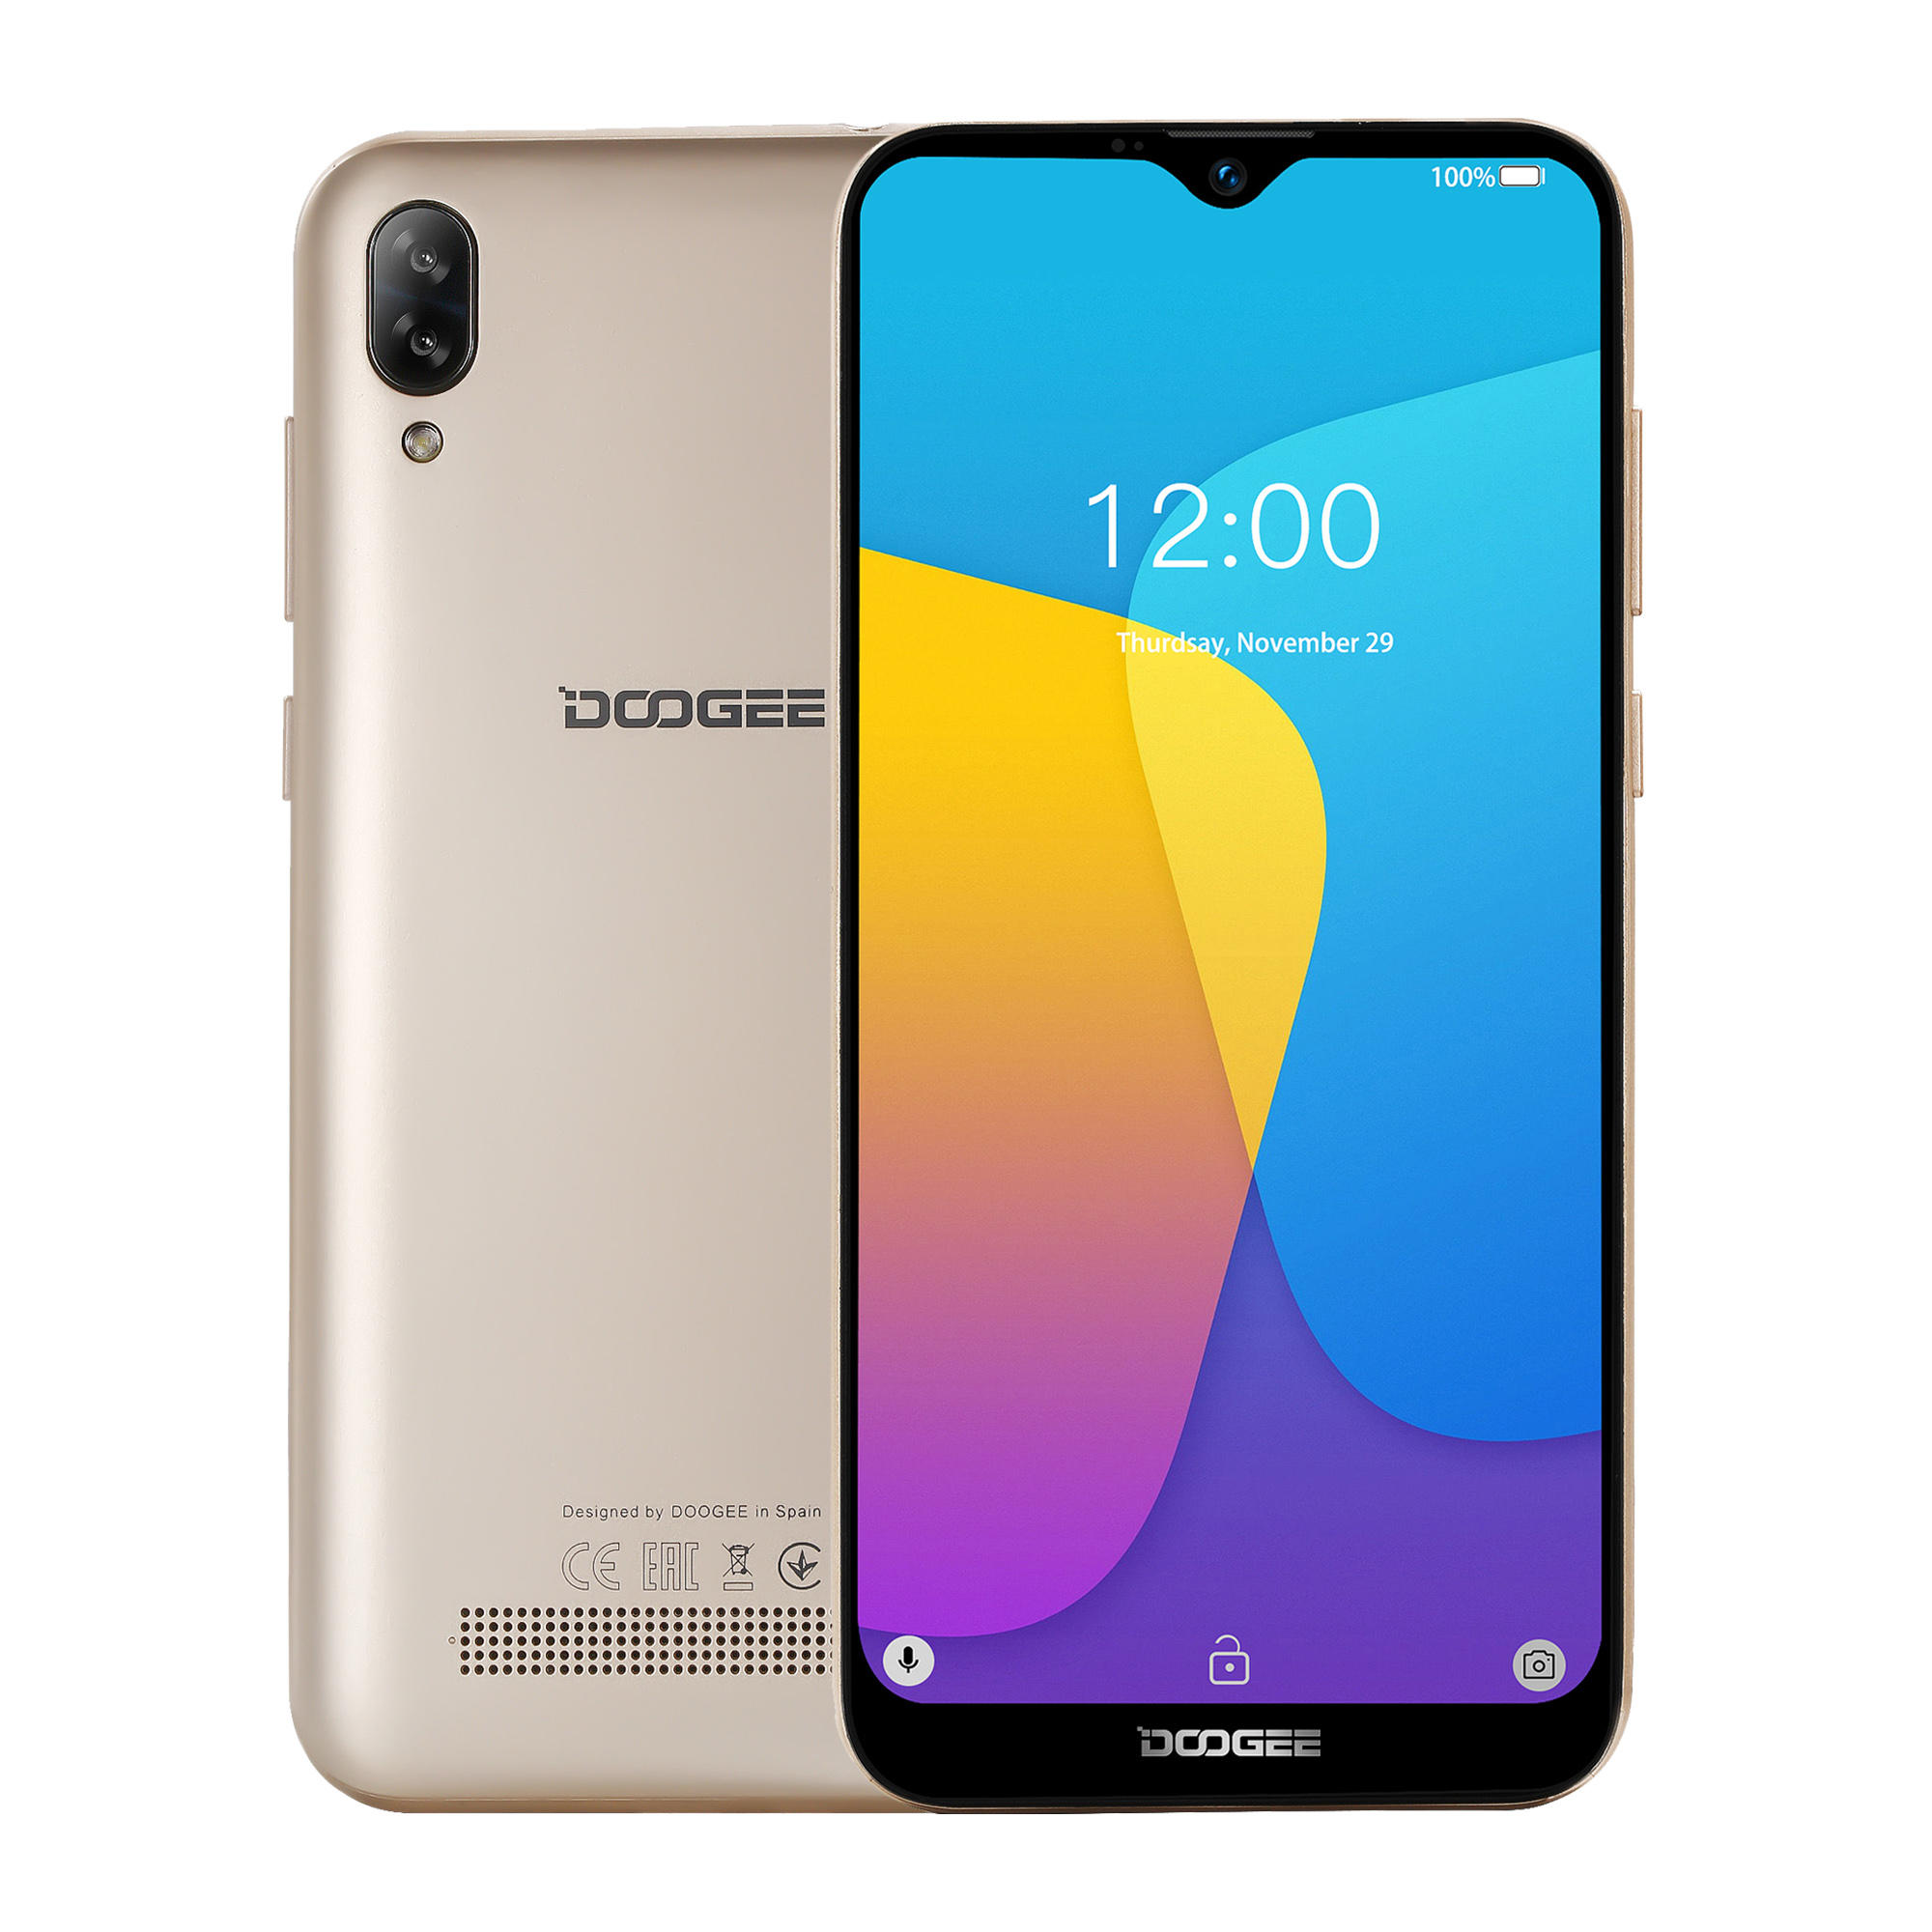 DOOGEE N20 6.3 inch FHD+ Android 9.0 4350mAh Triple Rear Cameras 16MP Front Camera 4GB 64GB Helio P23 4G Smartphone - 5